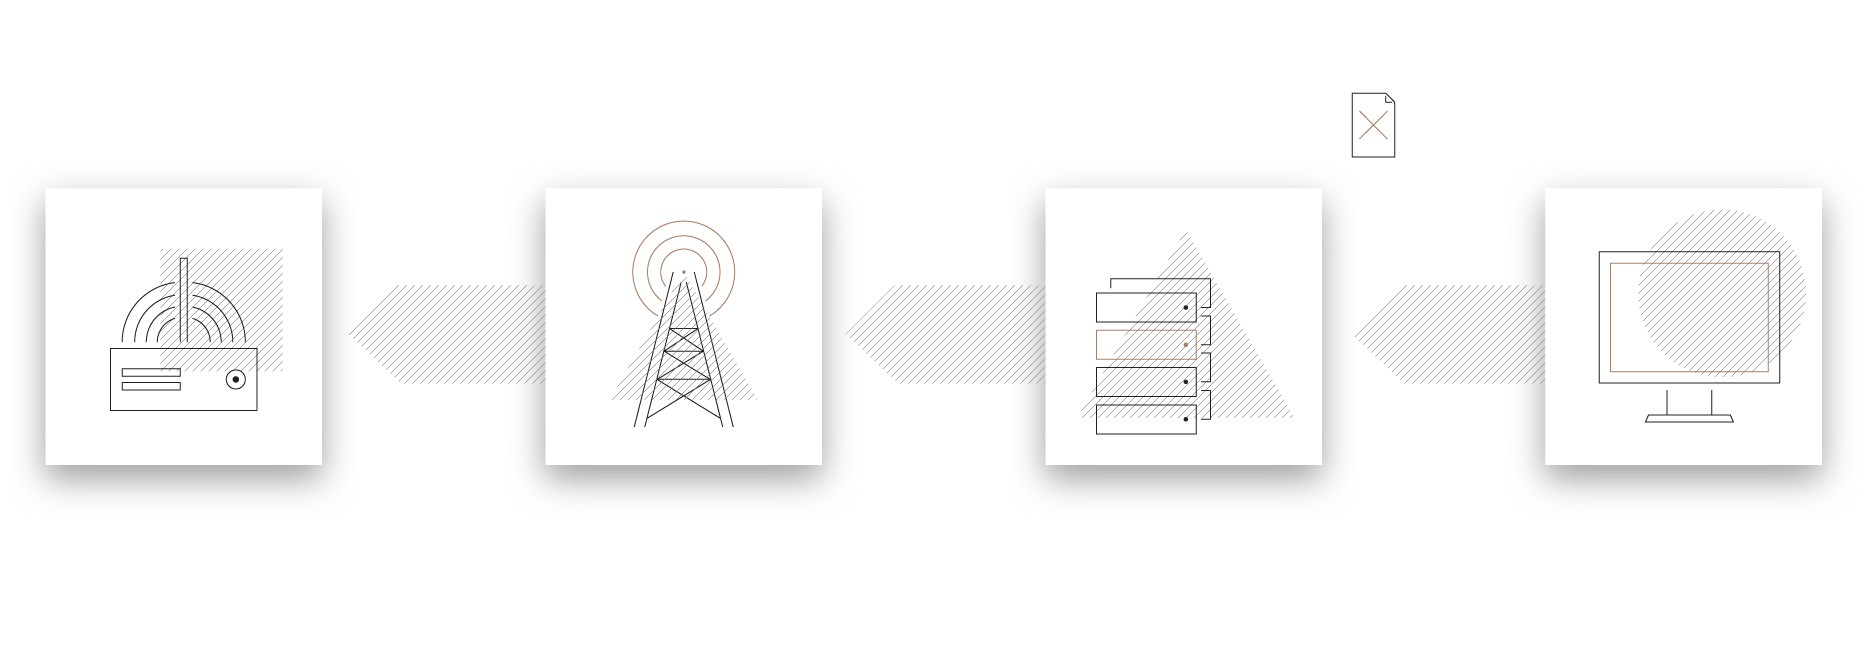 A graphic of a computer pointing to a server with a file and a cross above it pointing to an antenna that points to a device